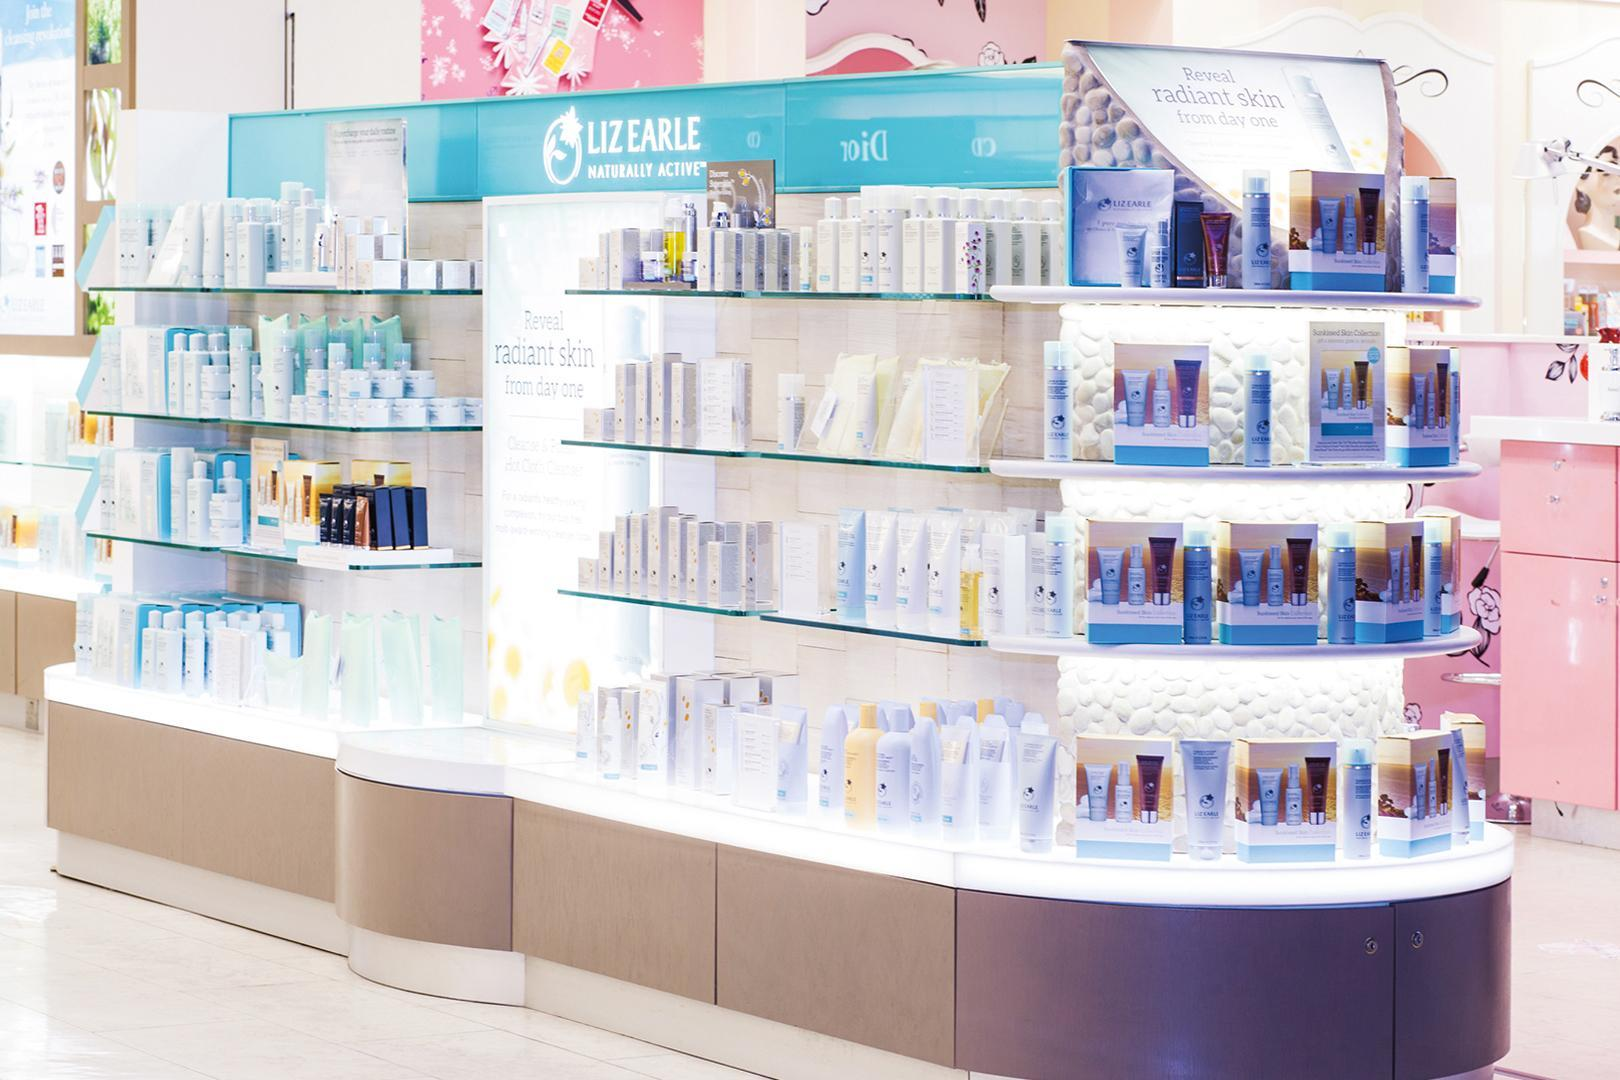 Liz Earle cosmetic product stand